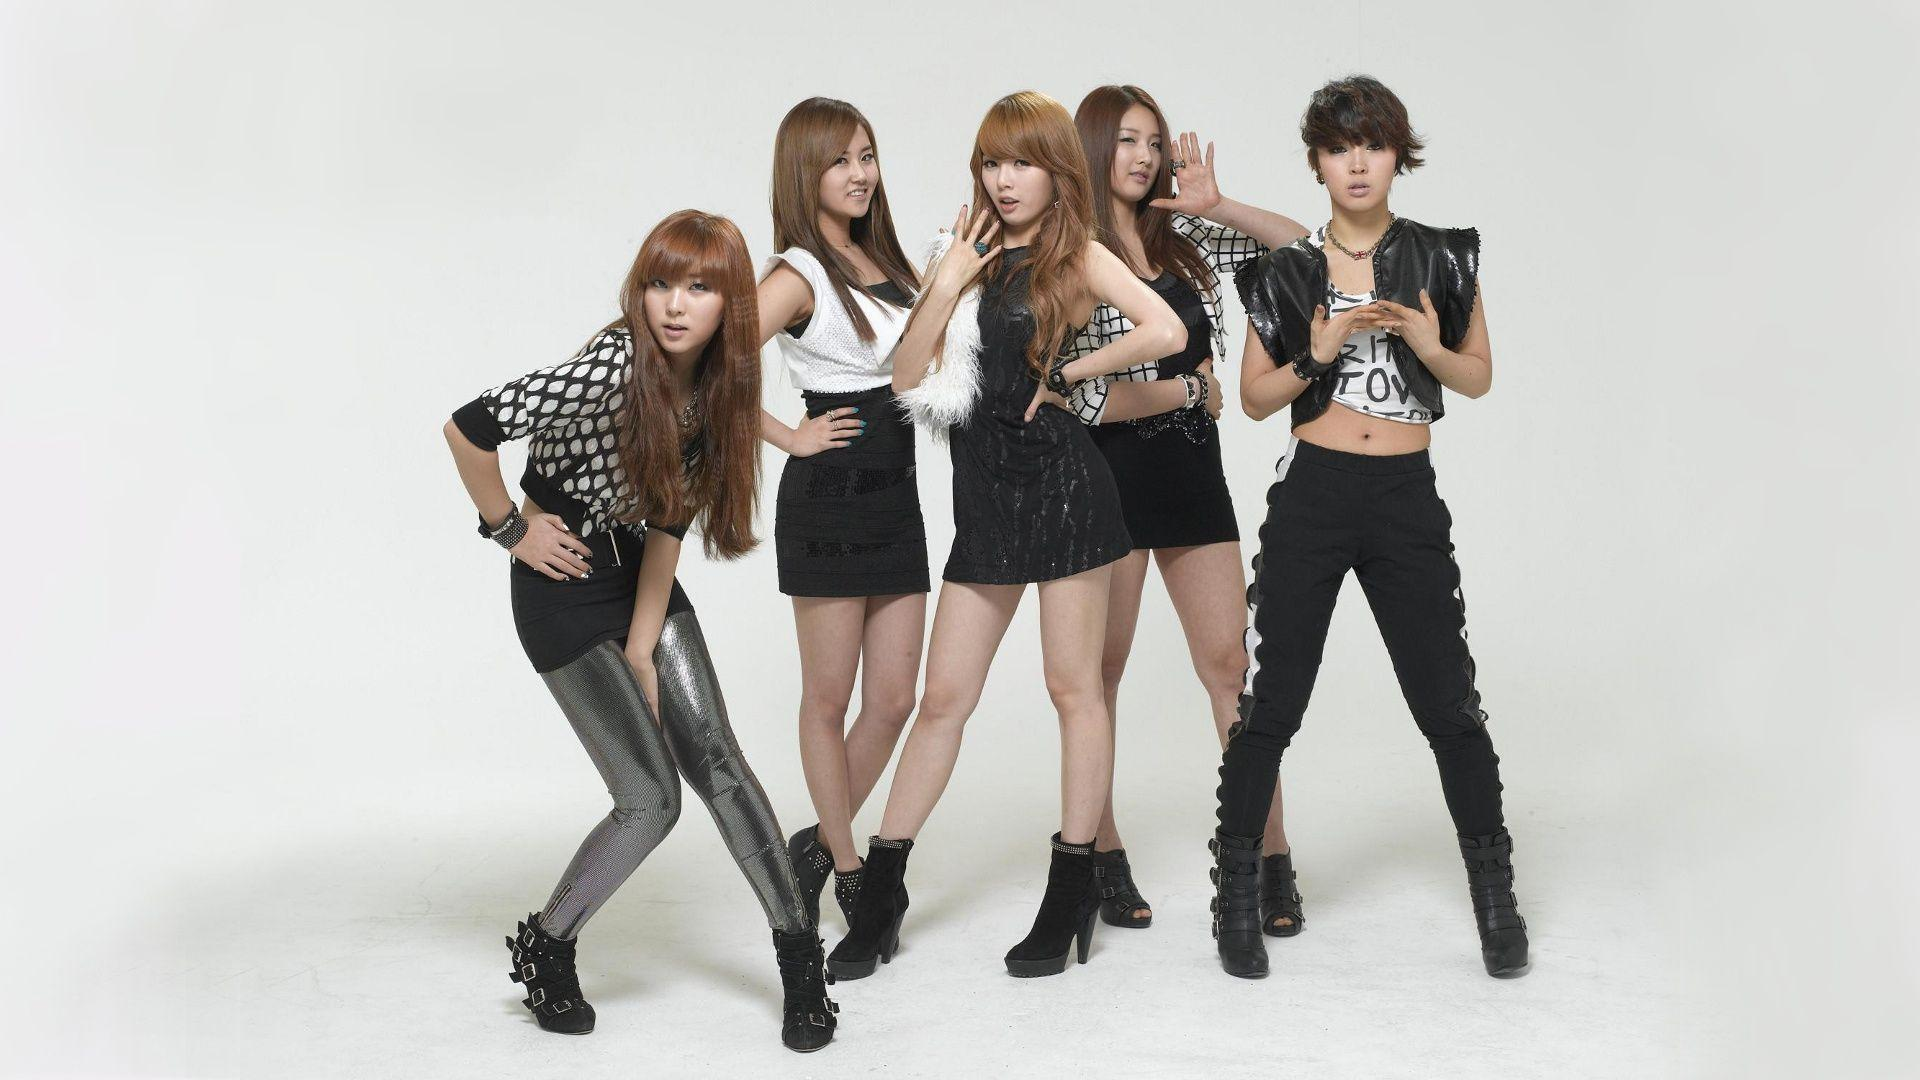 4 Minute Wallpapers 1920x1080